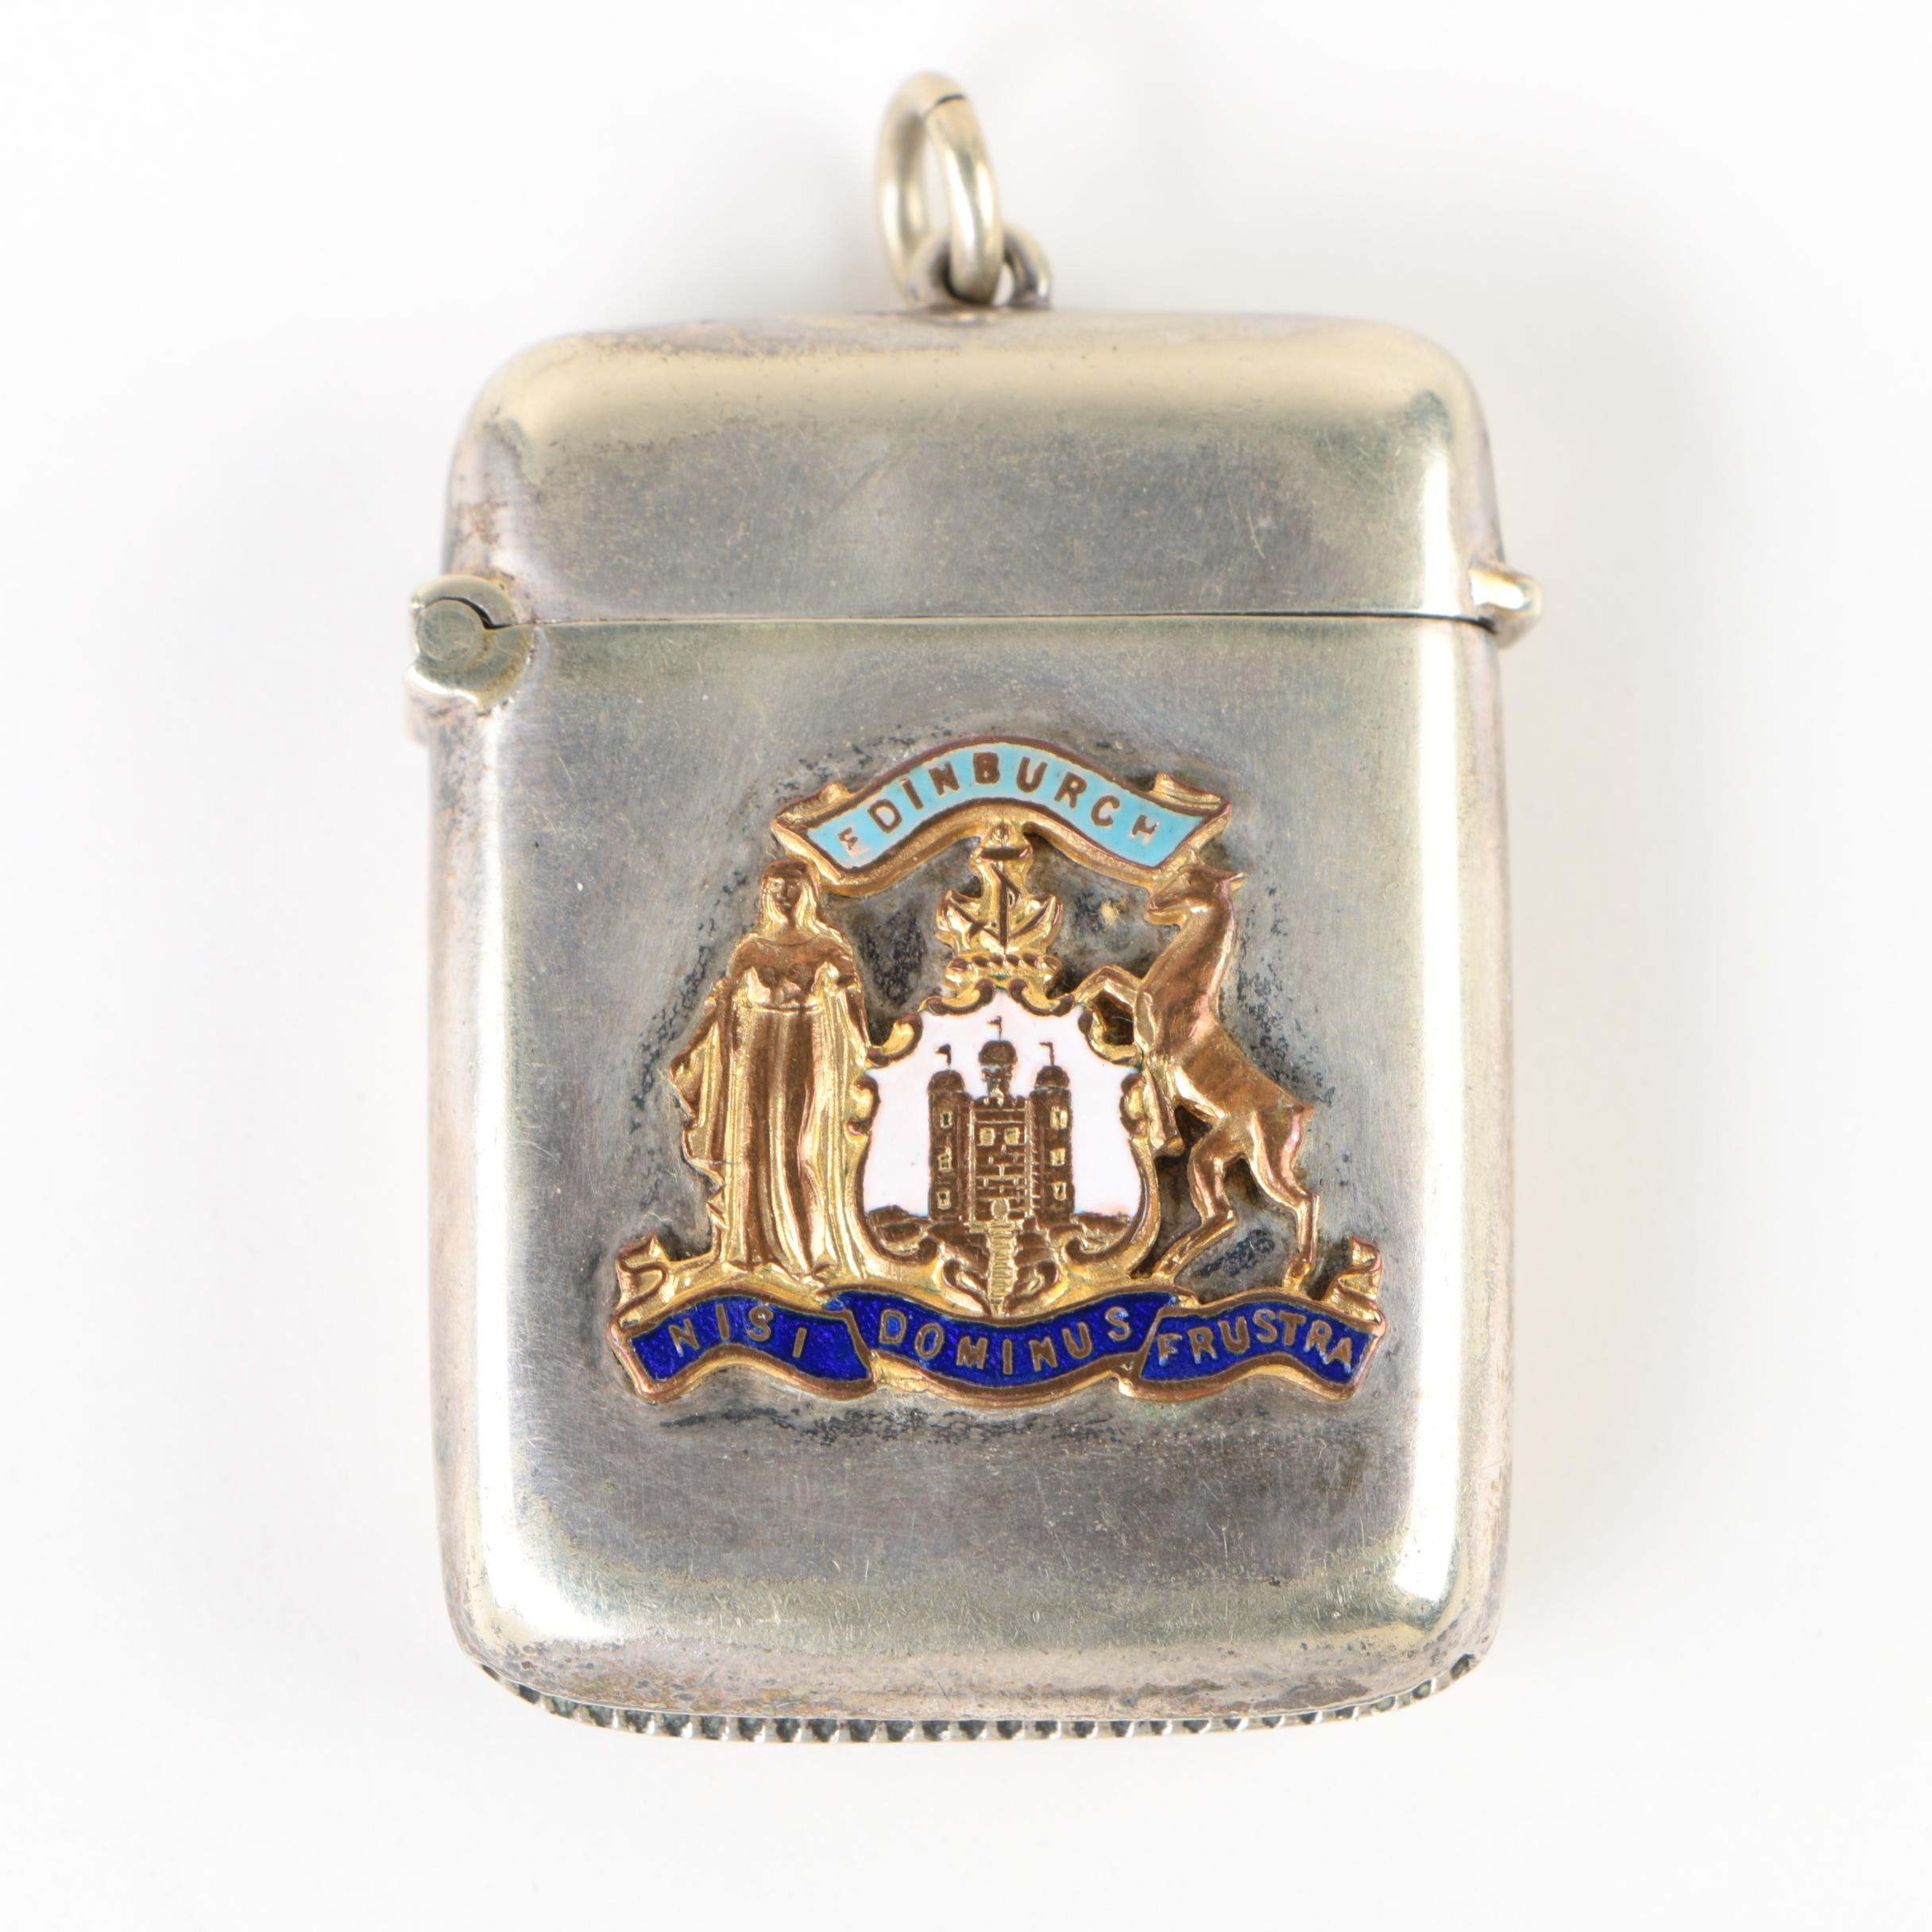 Joseph Cook & Son Silver-Plated Vesta Case with Edinburgh Coat of Arms Emblem